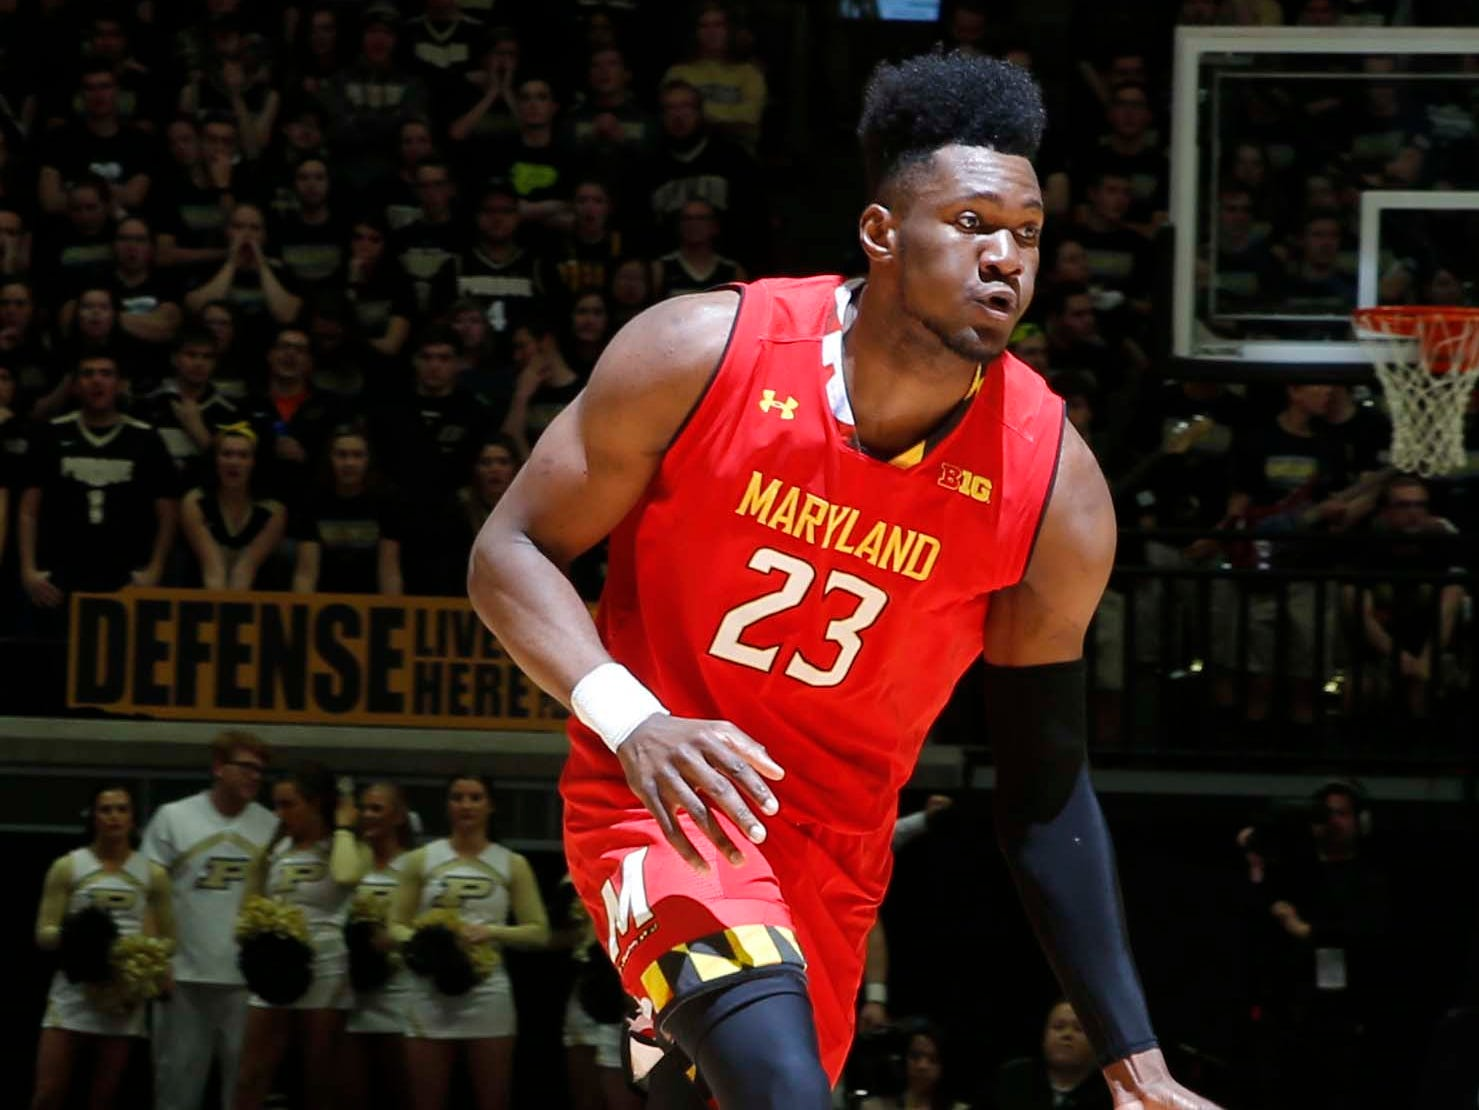 Dec 6, 2018; West Lafayette, IN, USA; Maryland Terrapins forward Bruno Fernando (23) drives towards the basket against the Purdue Boilermakers during the first half at Mackey Arena. Mandatory Credit: Brian Spurlock-USA TODAY Sports